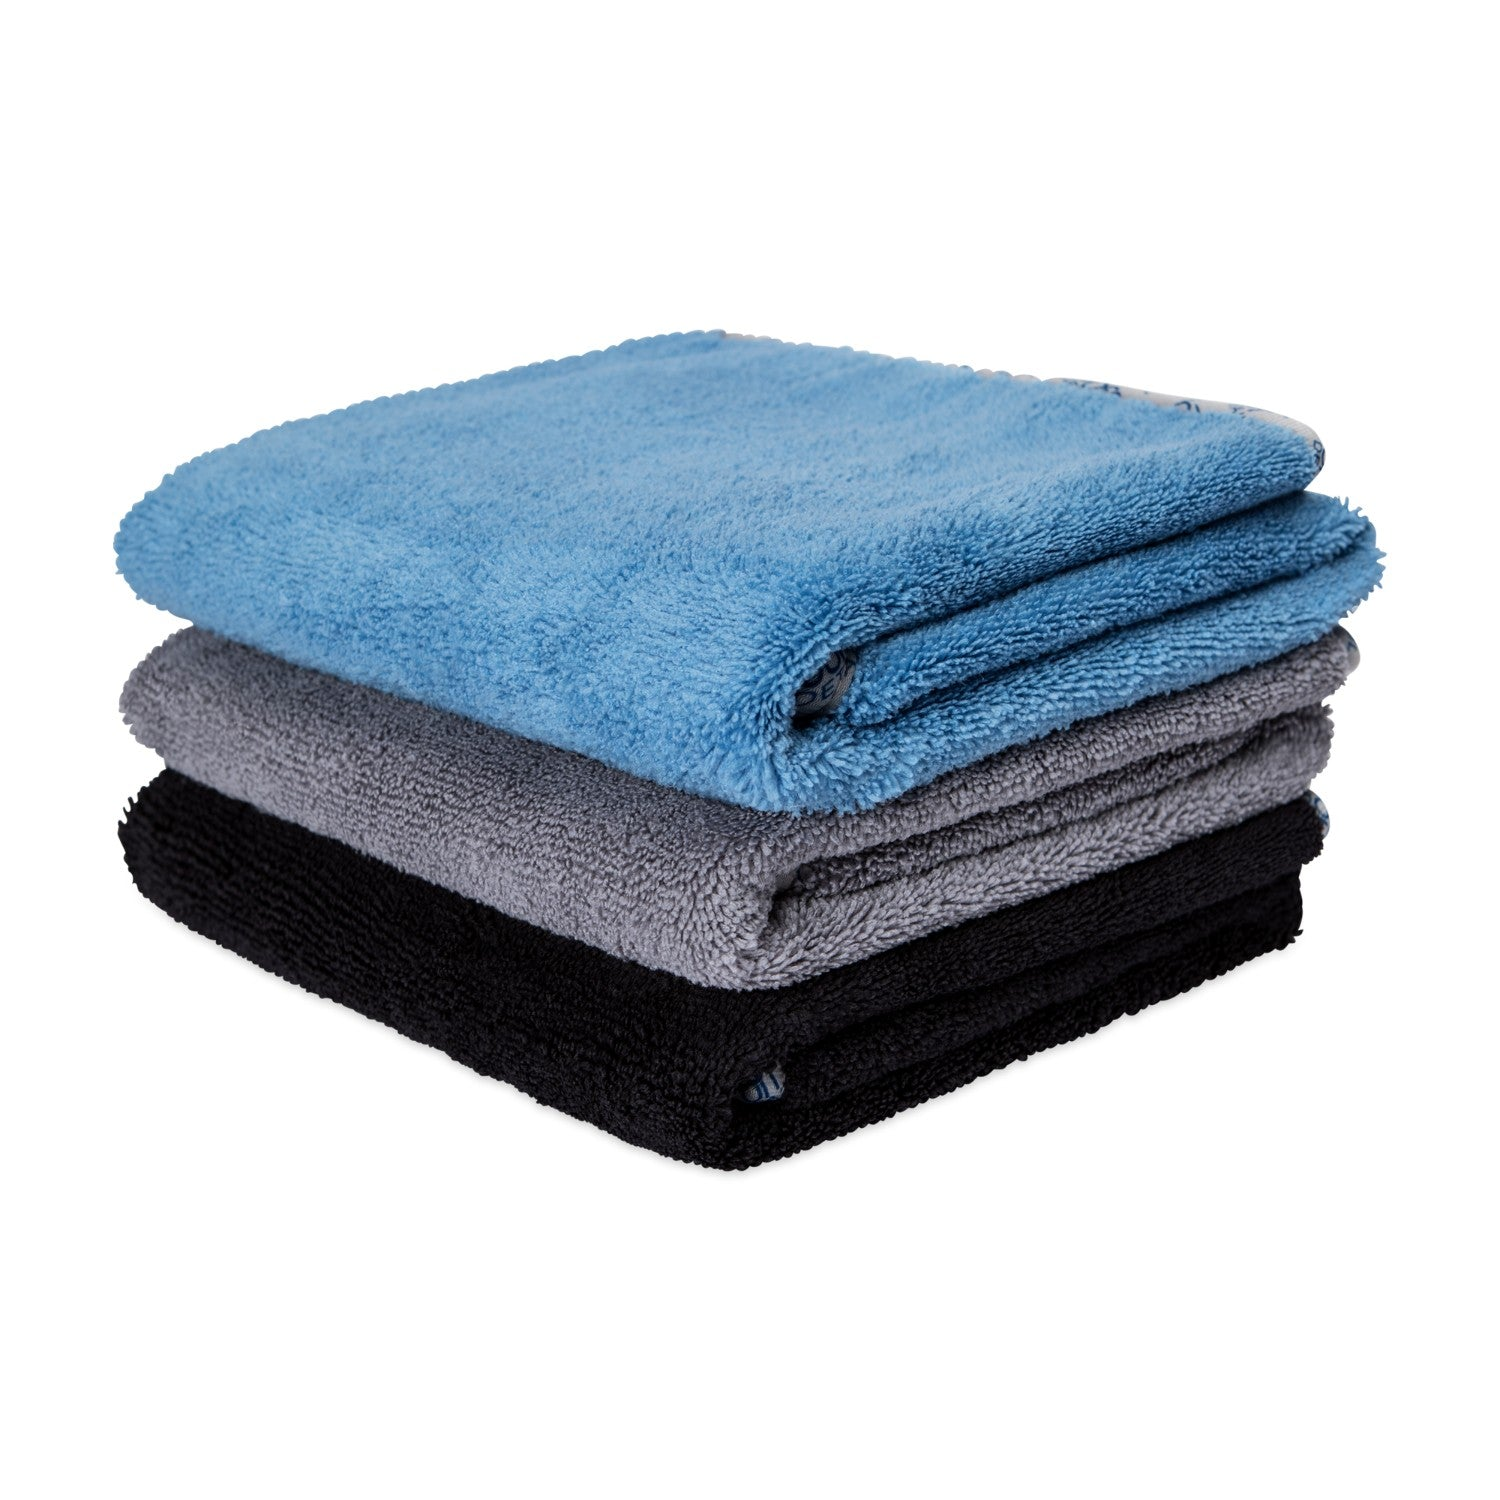 24x36-buff™-detail-400-microfiber-towel-multicolor